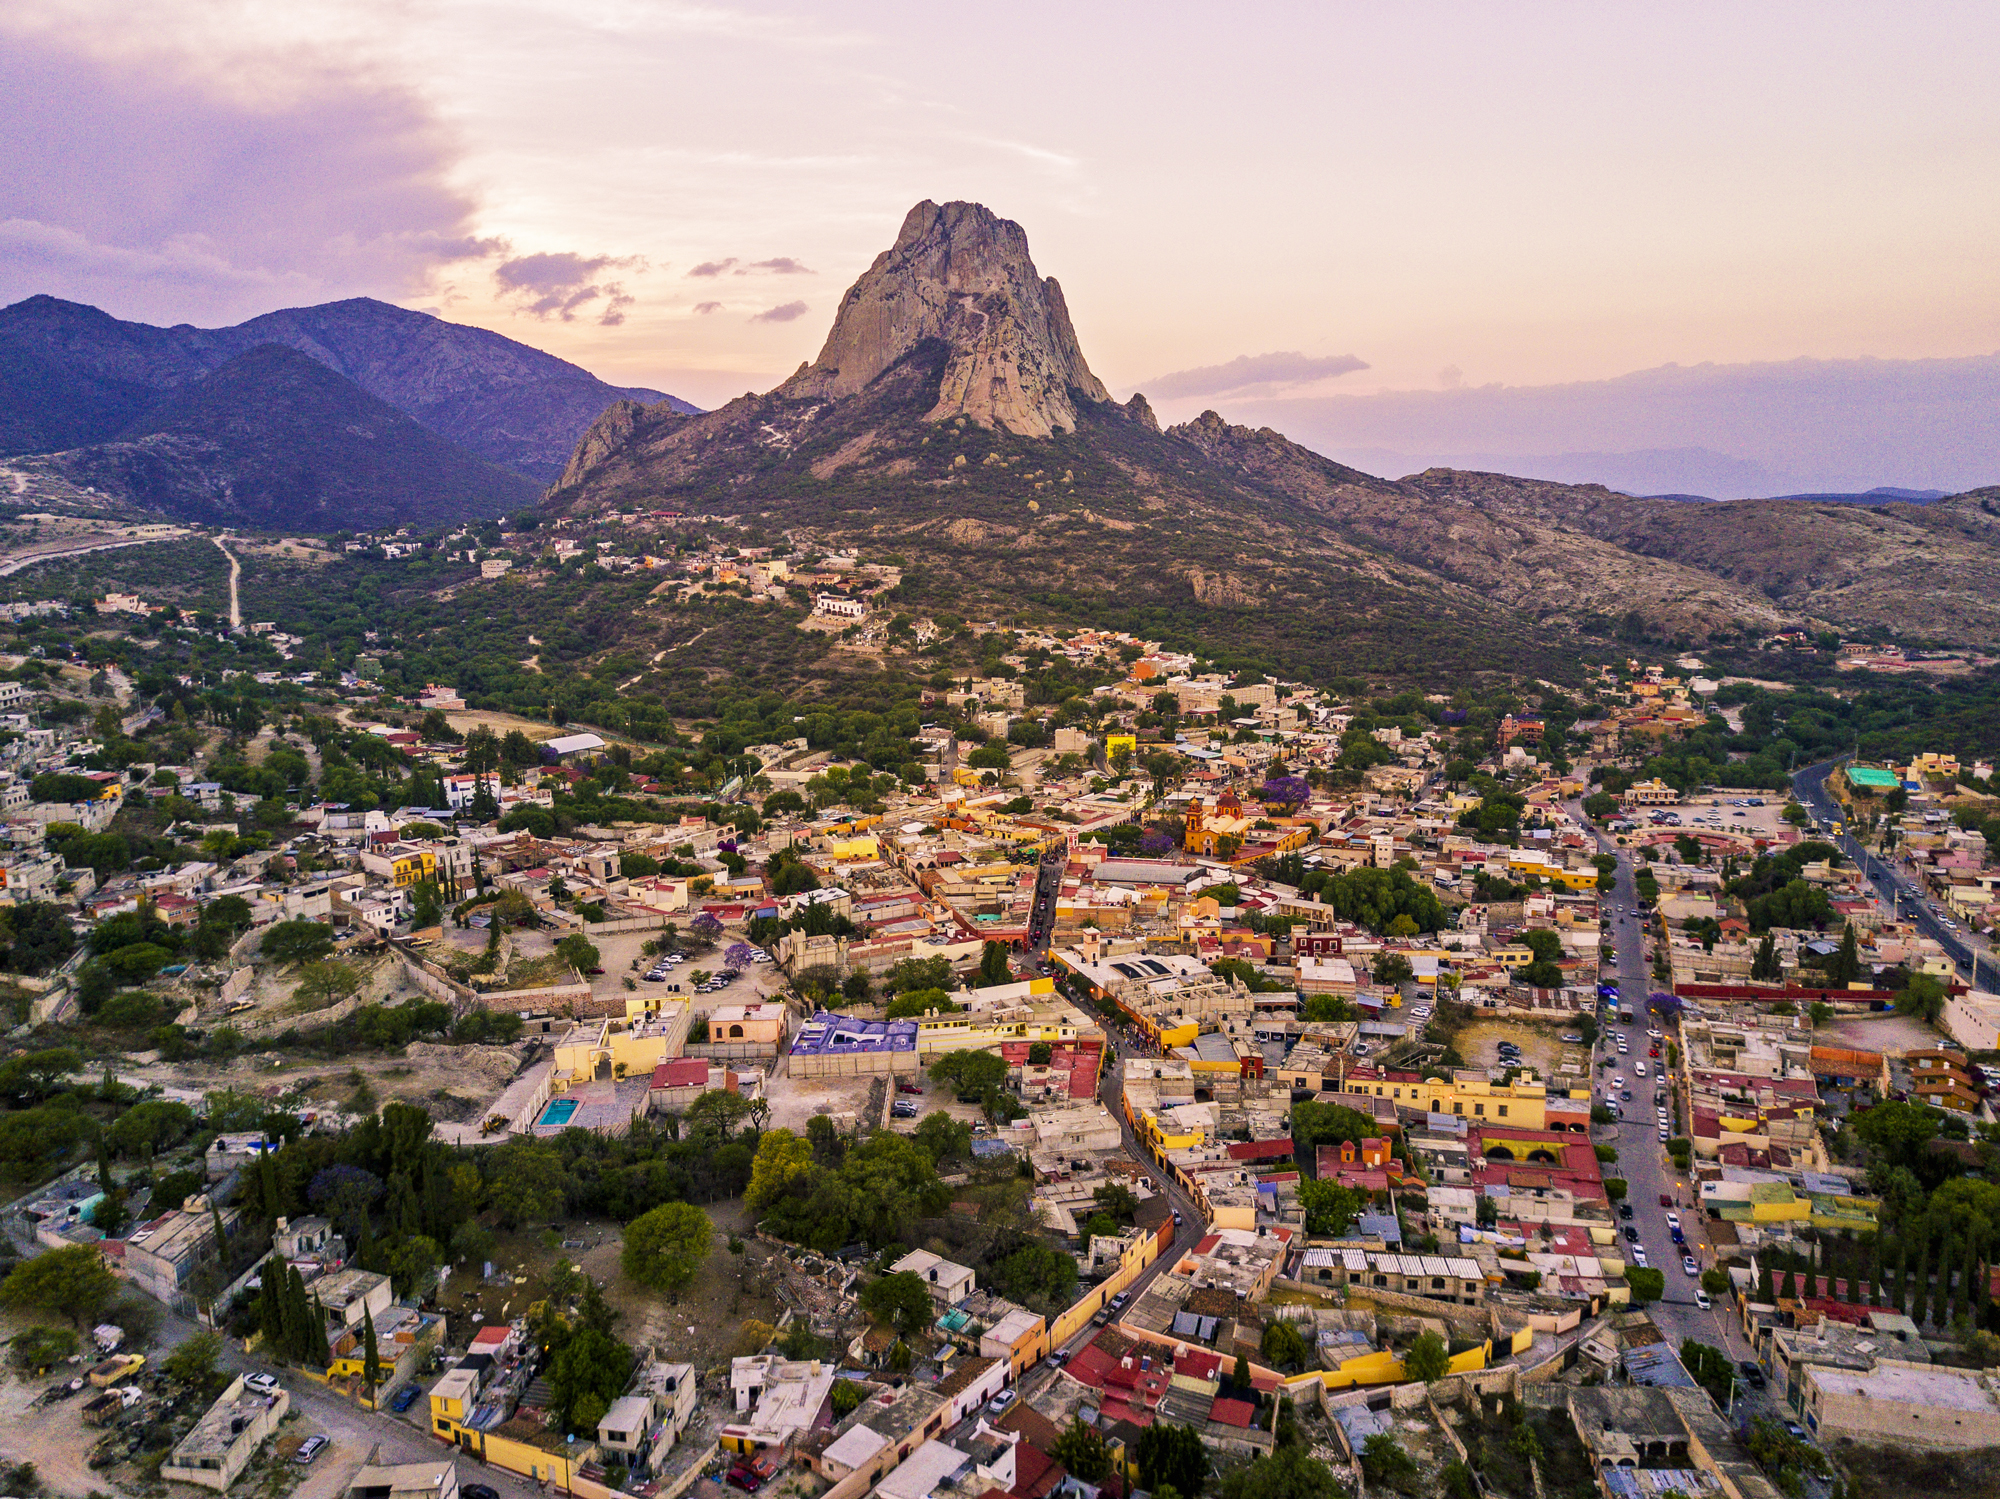 Aerial view of Peña de Bernal